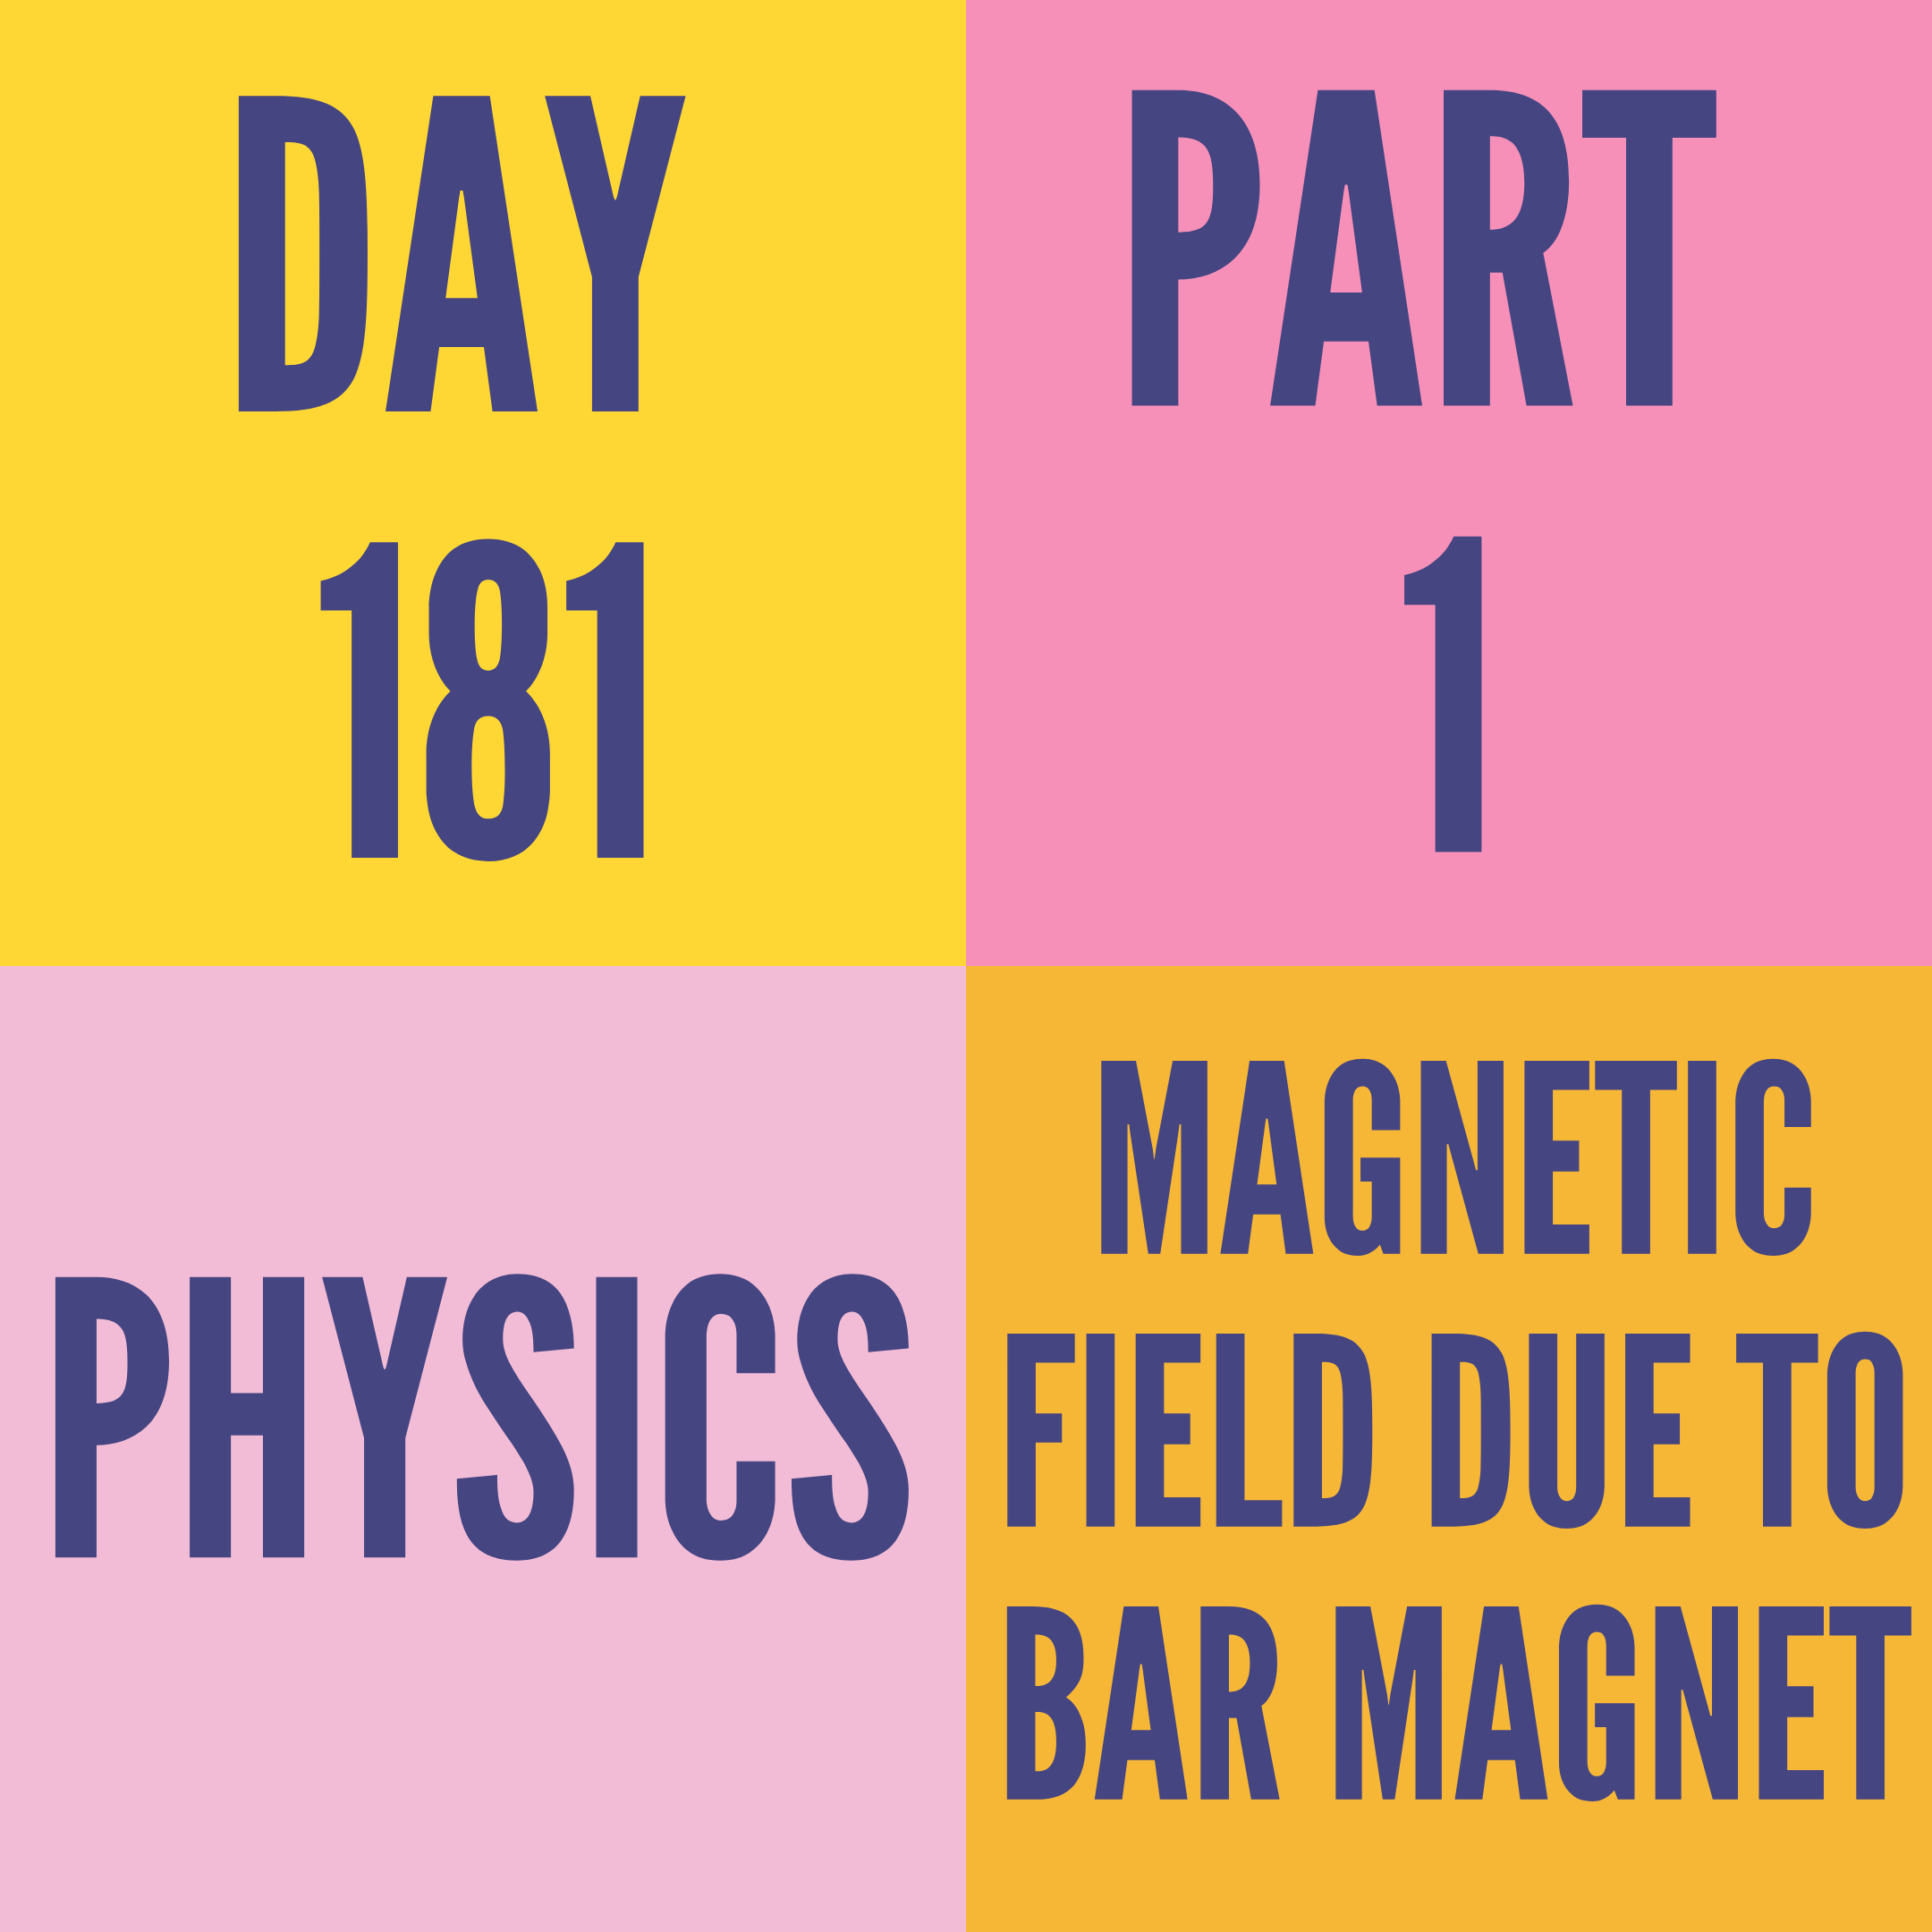 DAY-181 PART-1 MAGNETIC FIELD DUE TO BAR MAGNET